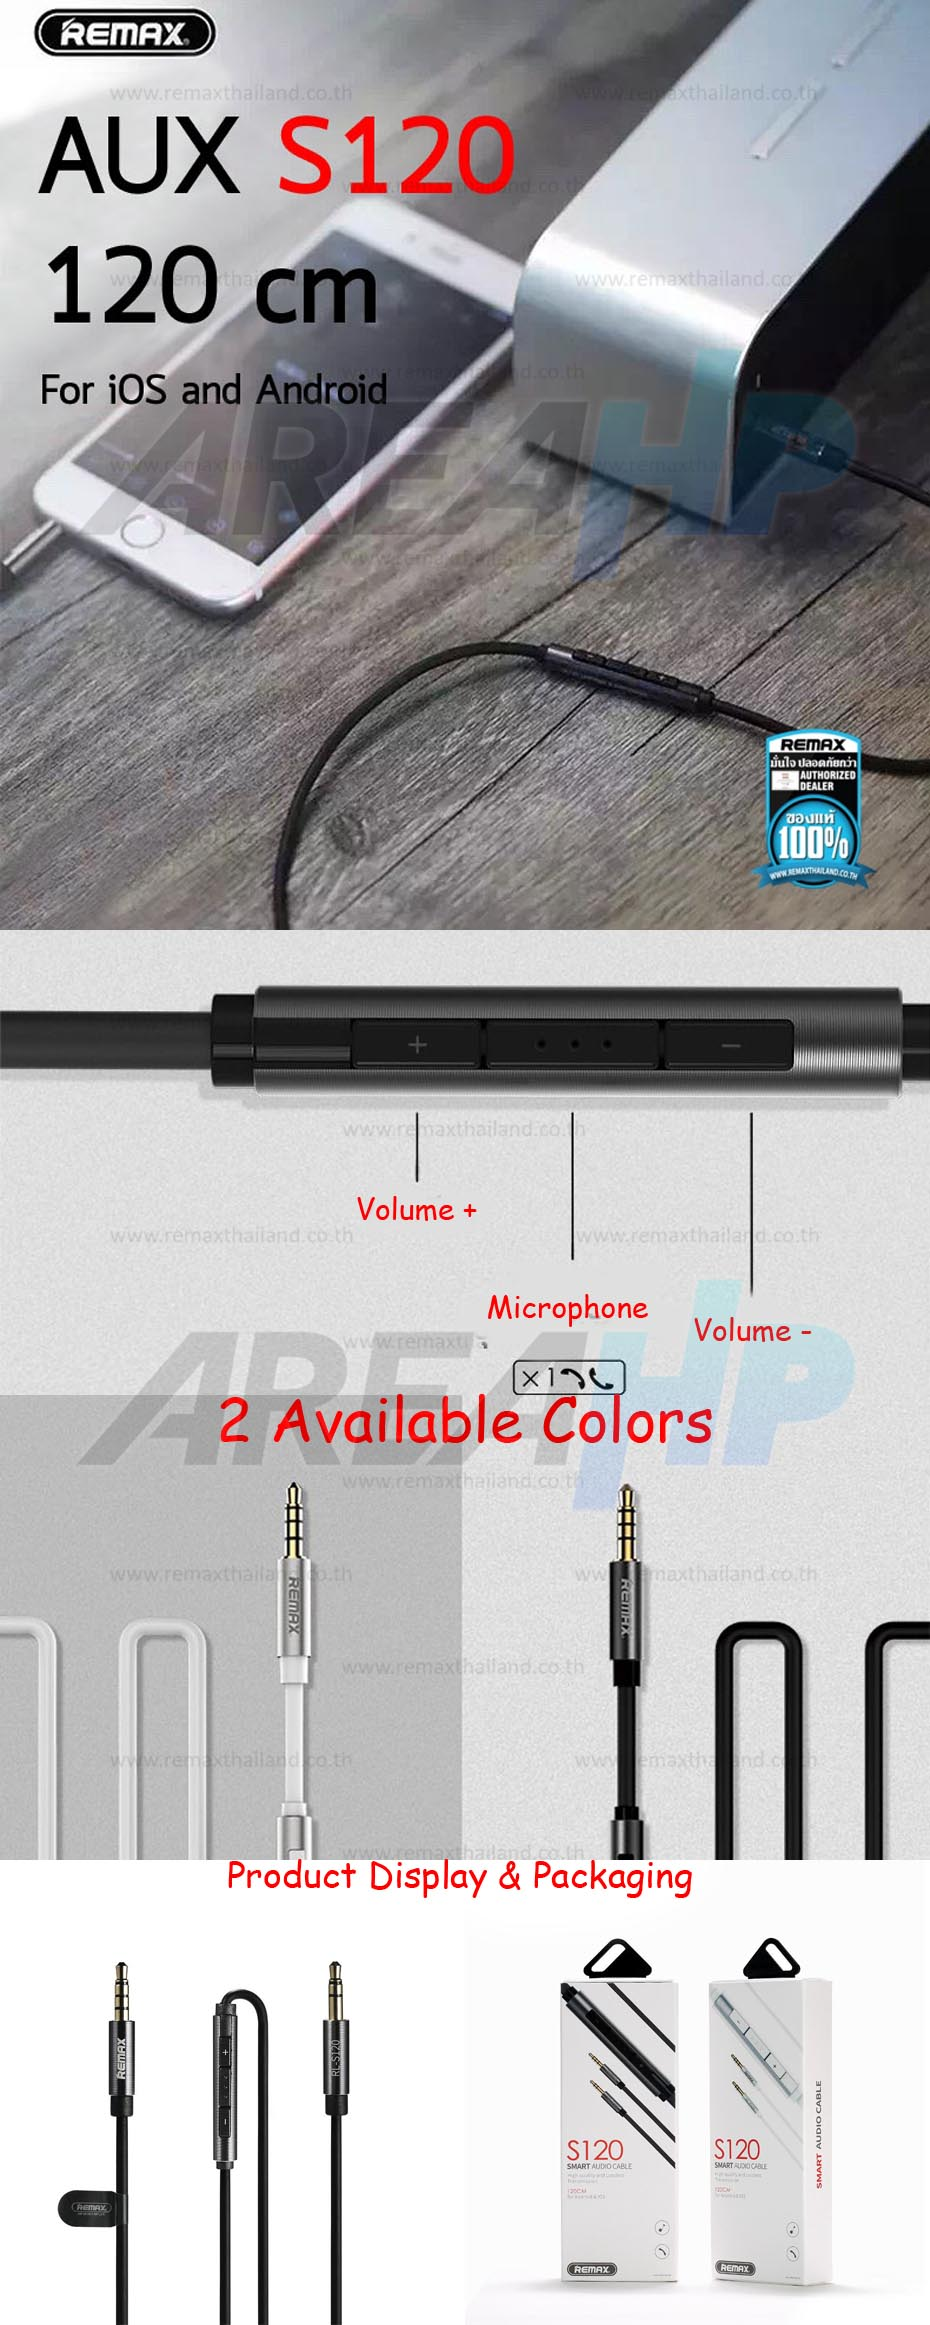 Remax Smart 3.5mm Audio Aux Male to Male Jack Cable with Mic 1.2M S120 Overview